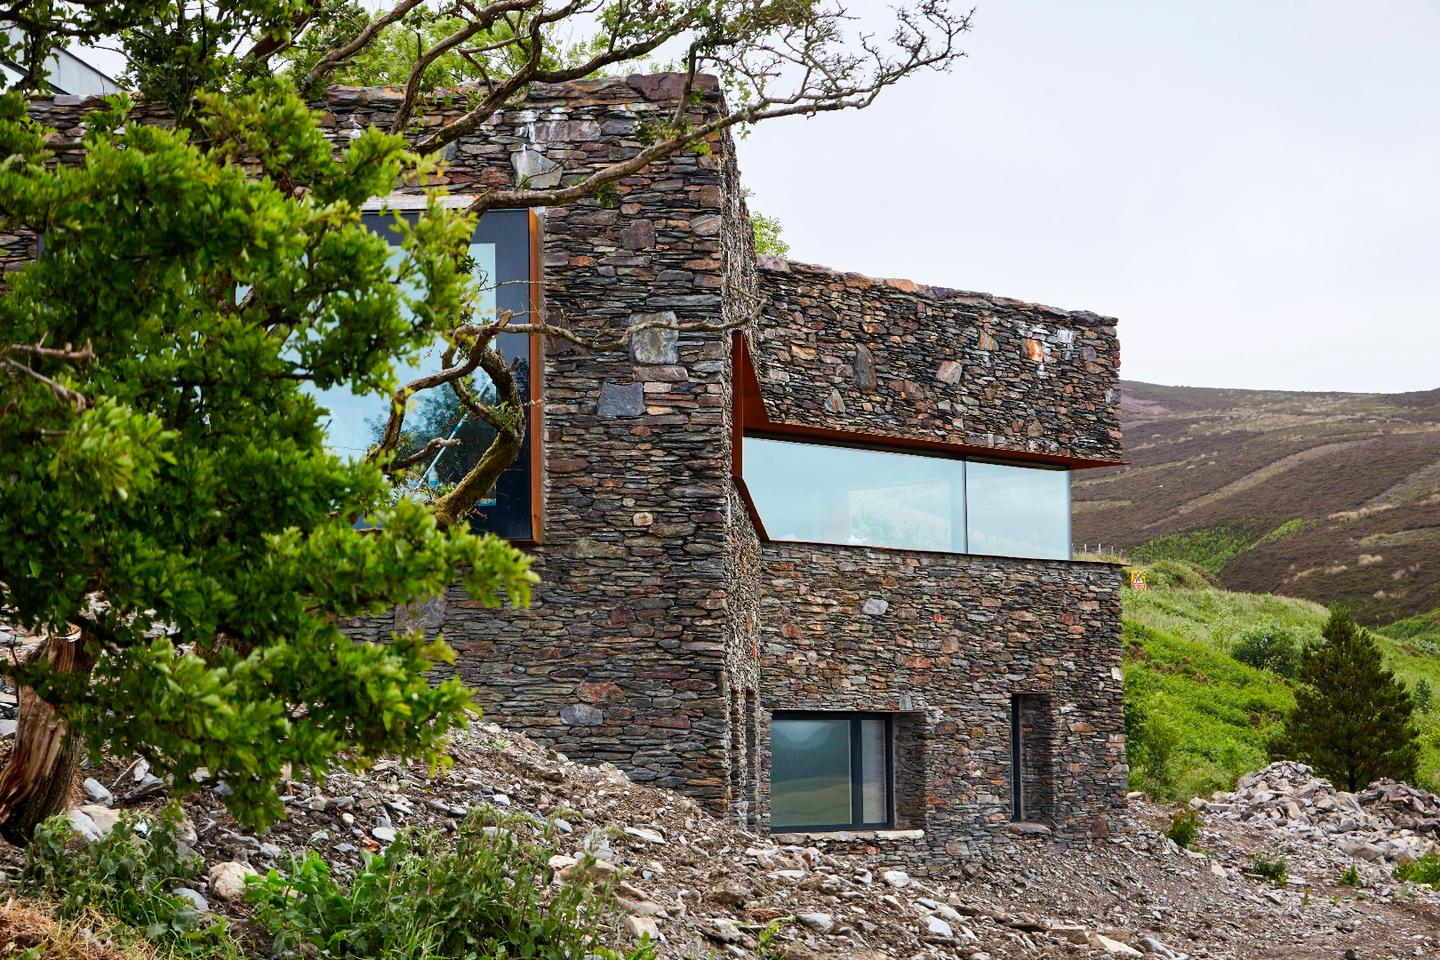 A Restorative Rural Retreat for Sartfell is located in the Isle of Man andwas designed byFoster Lomas